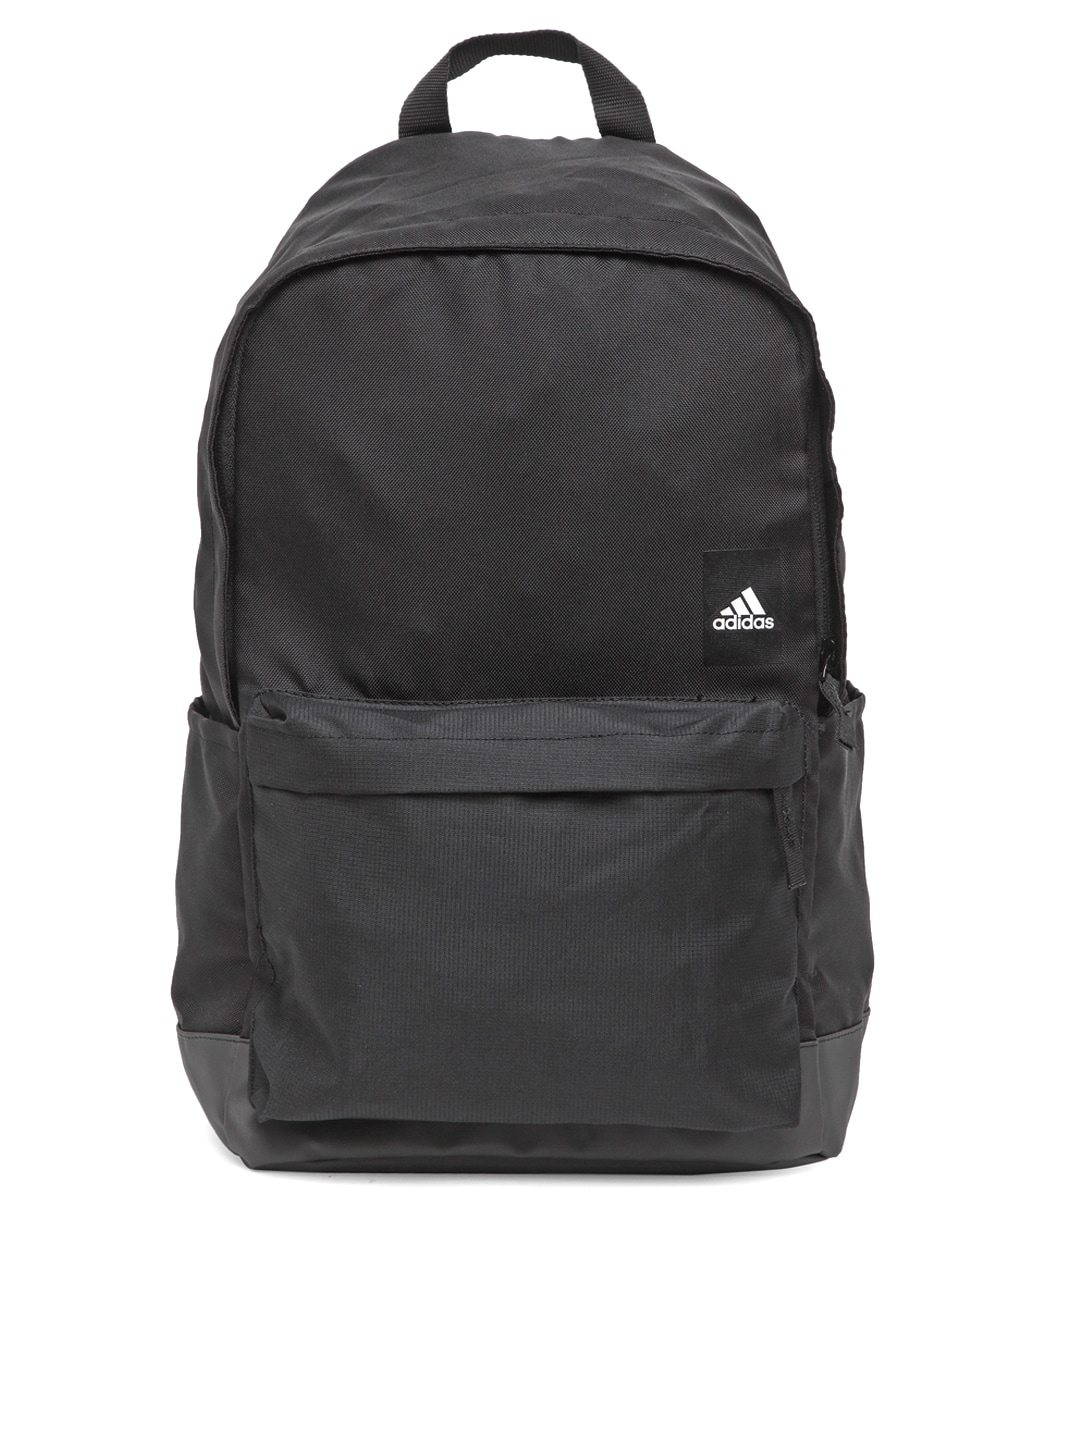 Adidas Backpacks Tracksuits Caps Tops - Buy Adidas Backpacks Tracksuits  Caps Tops online in India 5f93d7dc56156